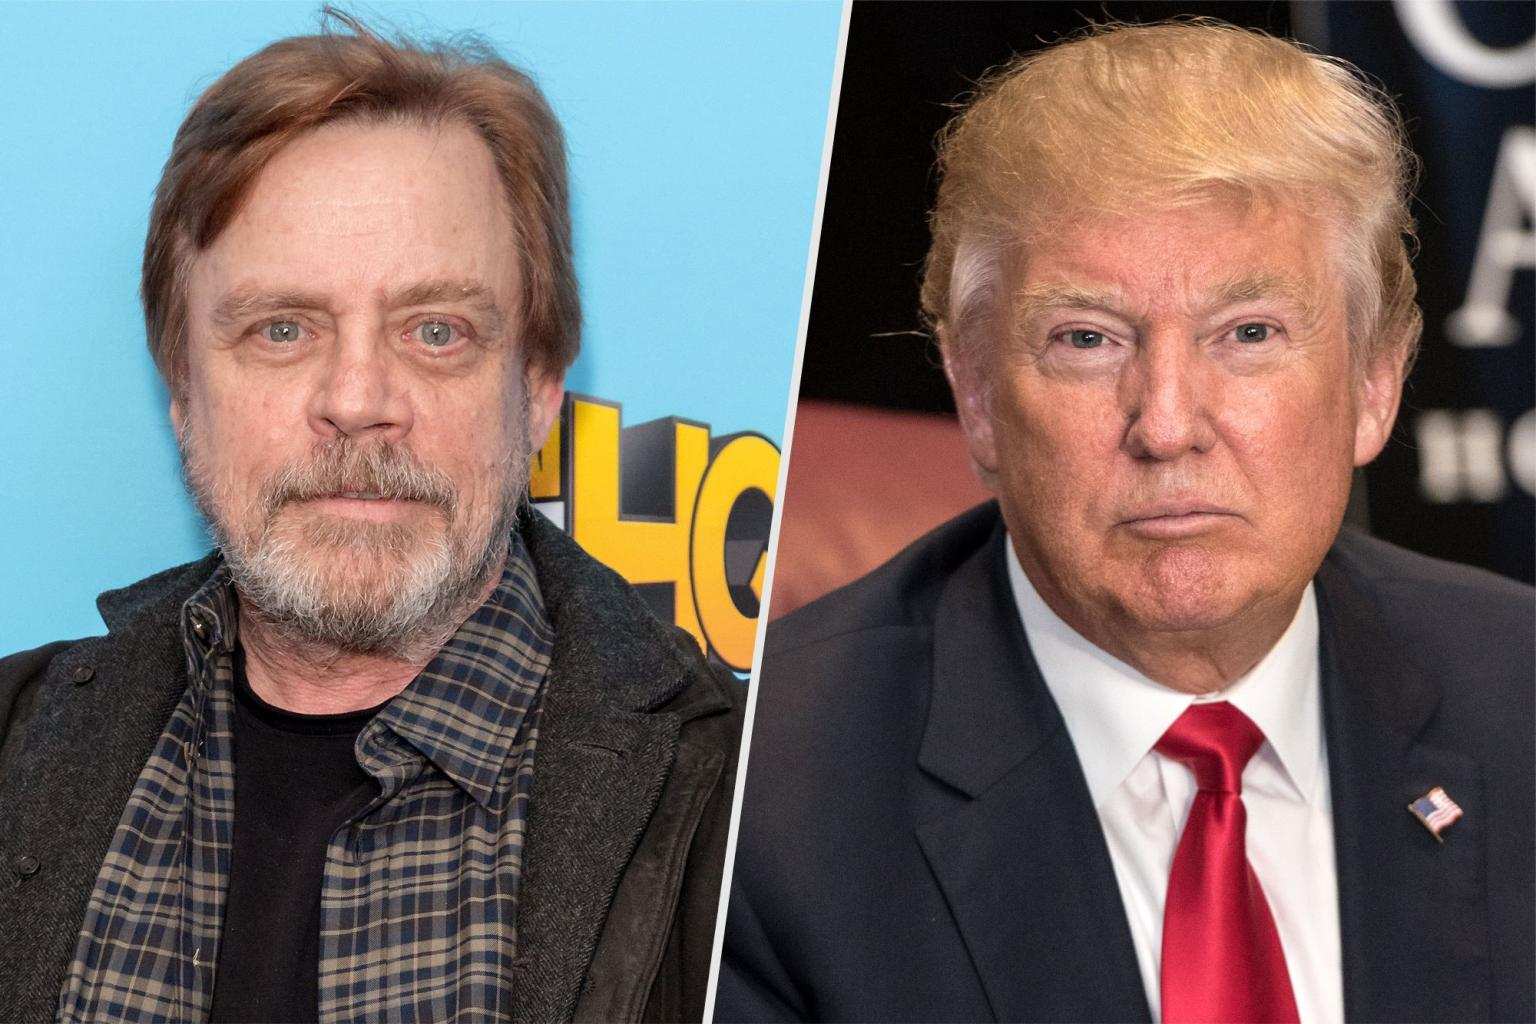 Hear Mark Hamill Read Donald Trump's Bizarre New Year Tweet as the Joker